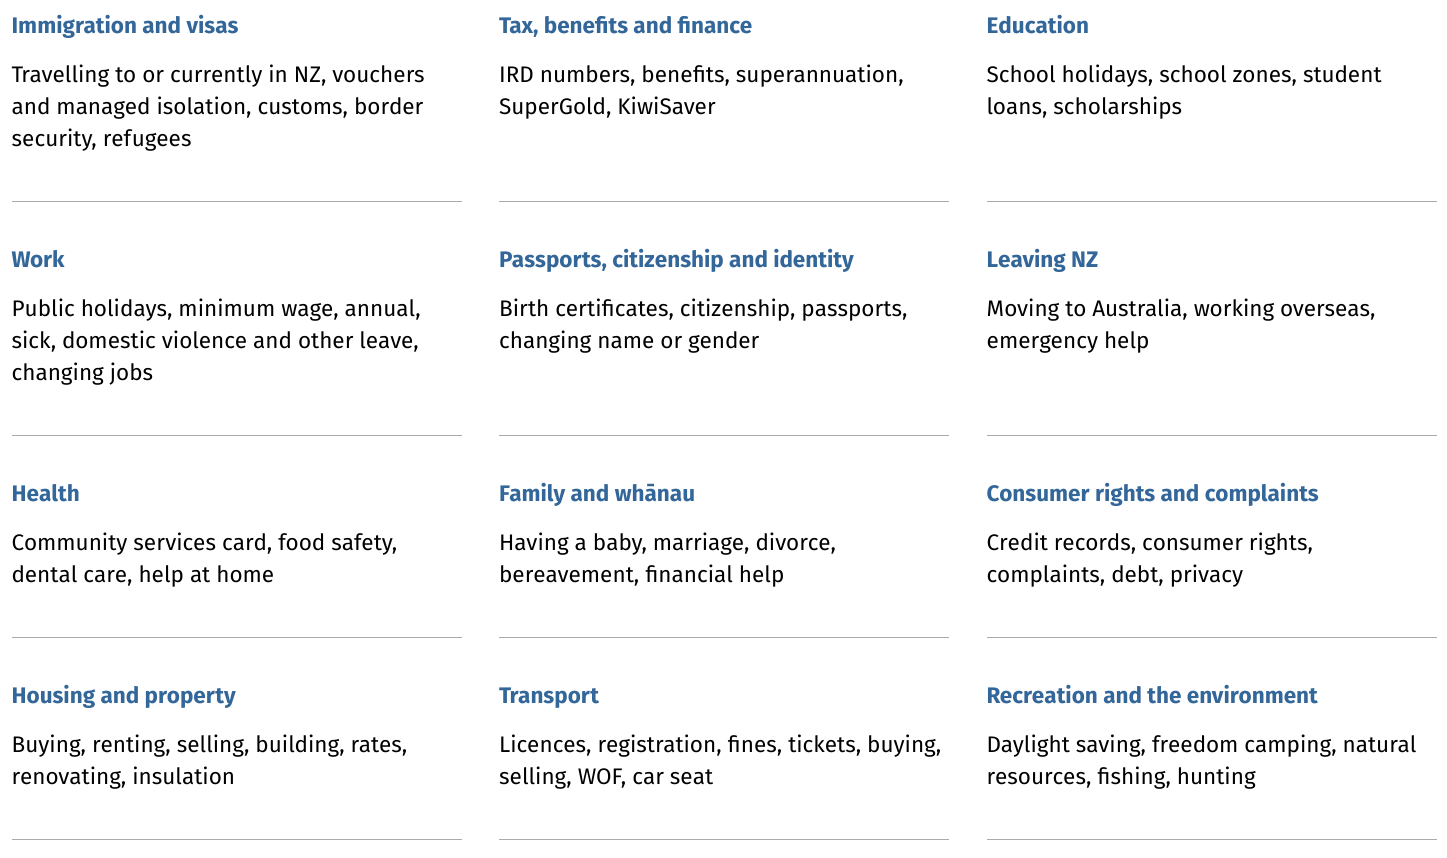 Table with information on what services the government of New Zealand provides